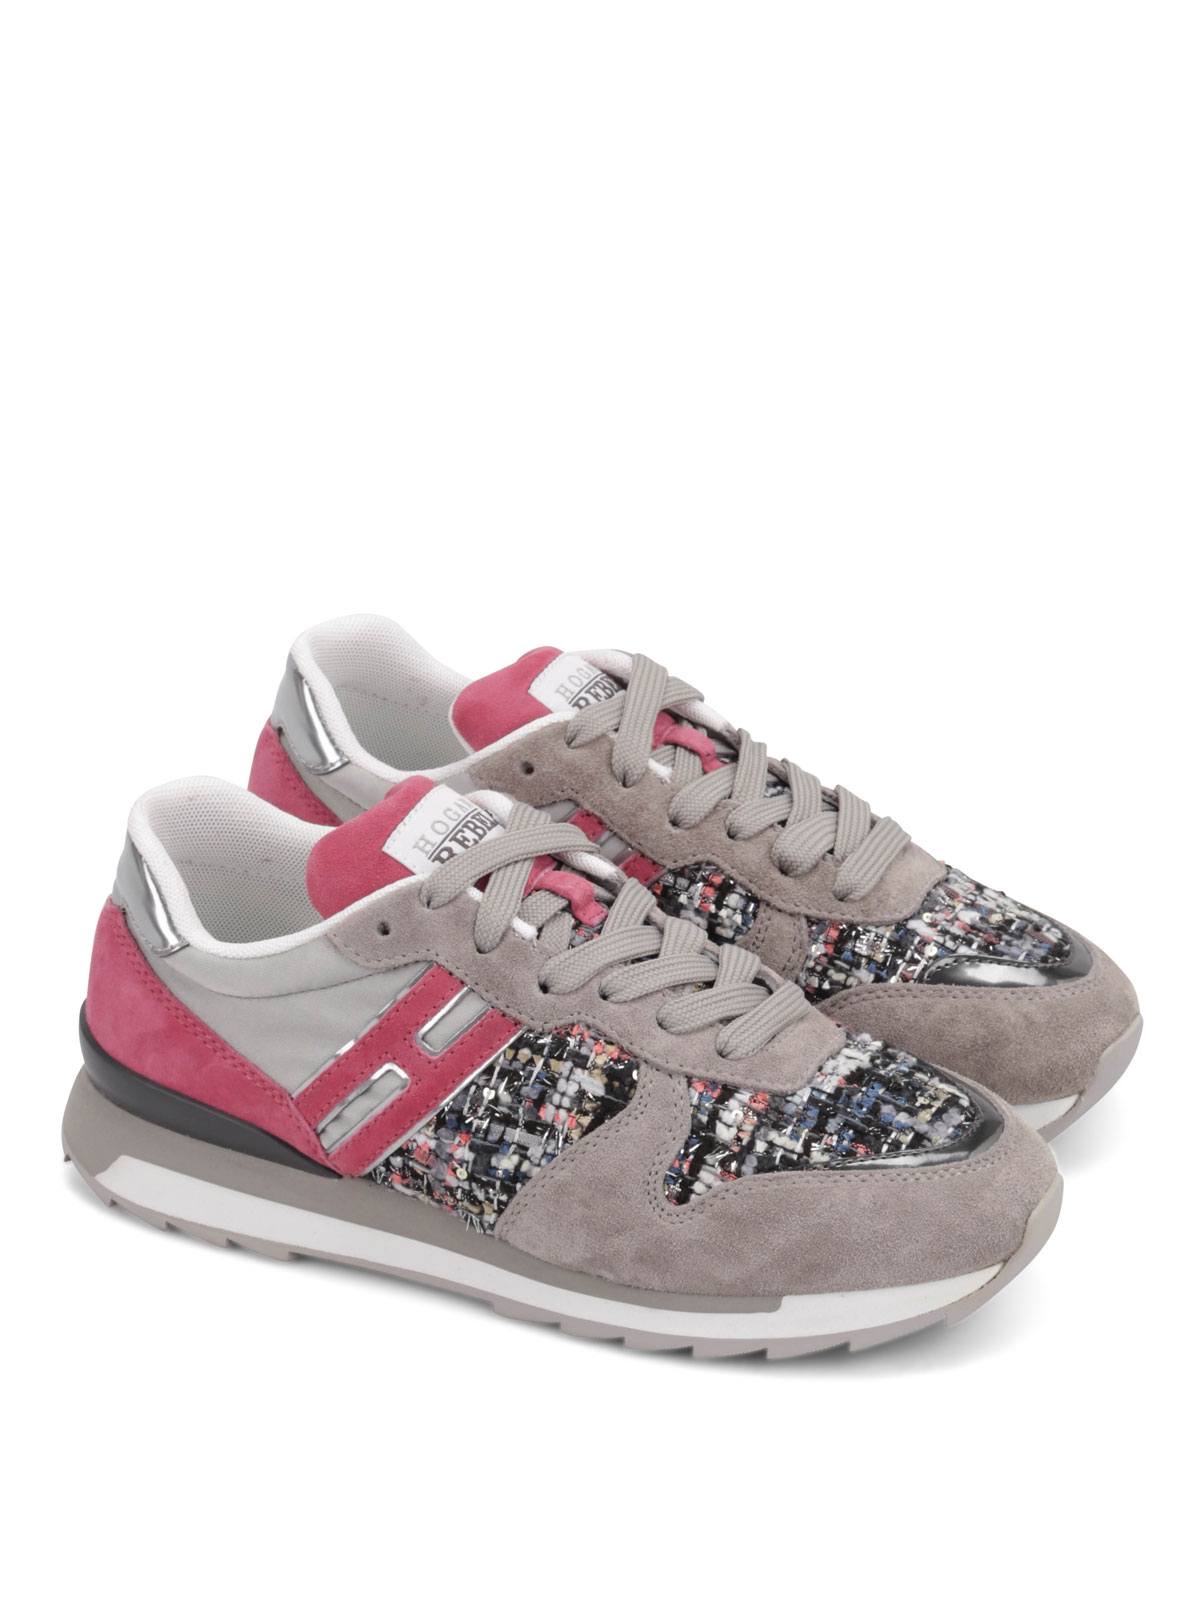 Hogan Rebel Hogan Rebel Trainers R261 Trainers